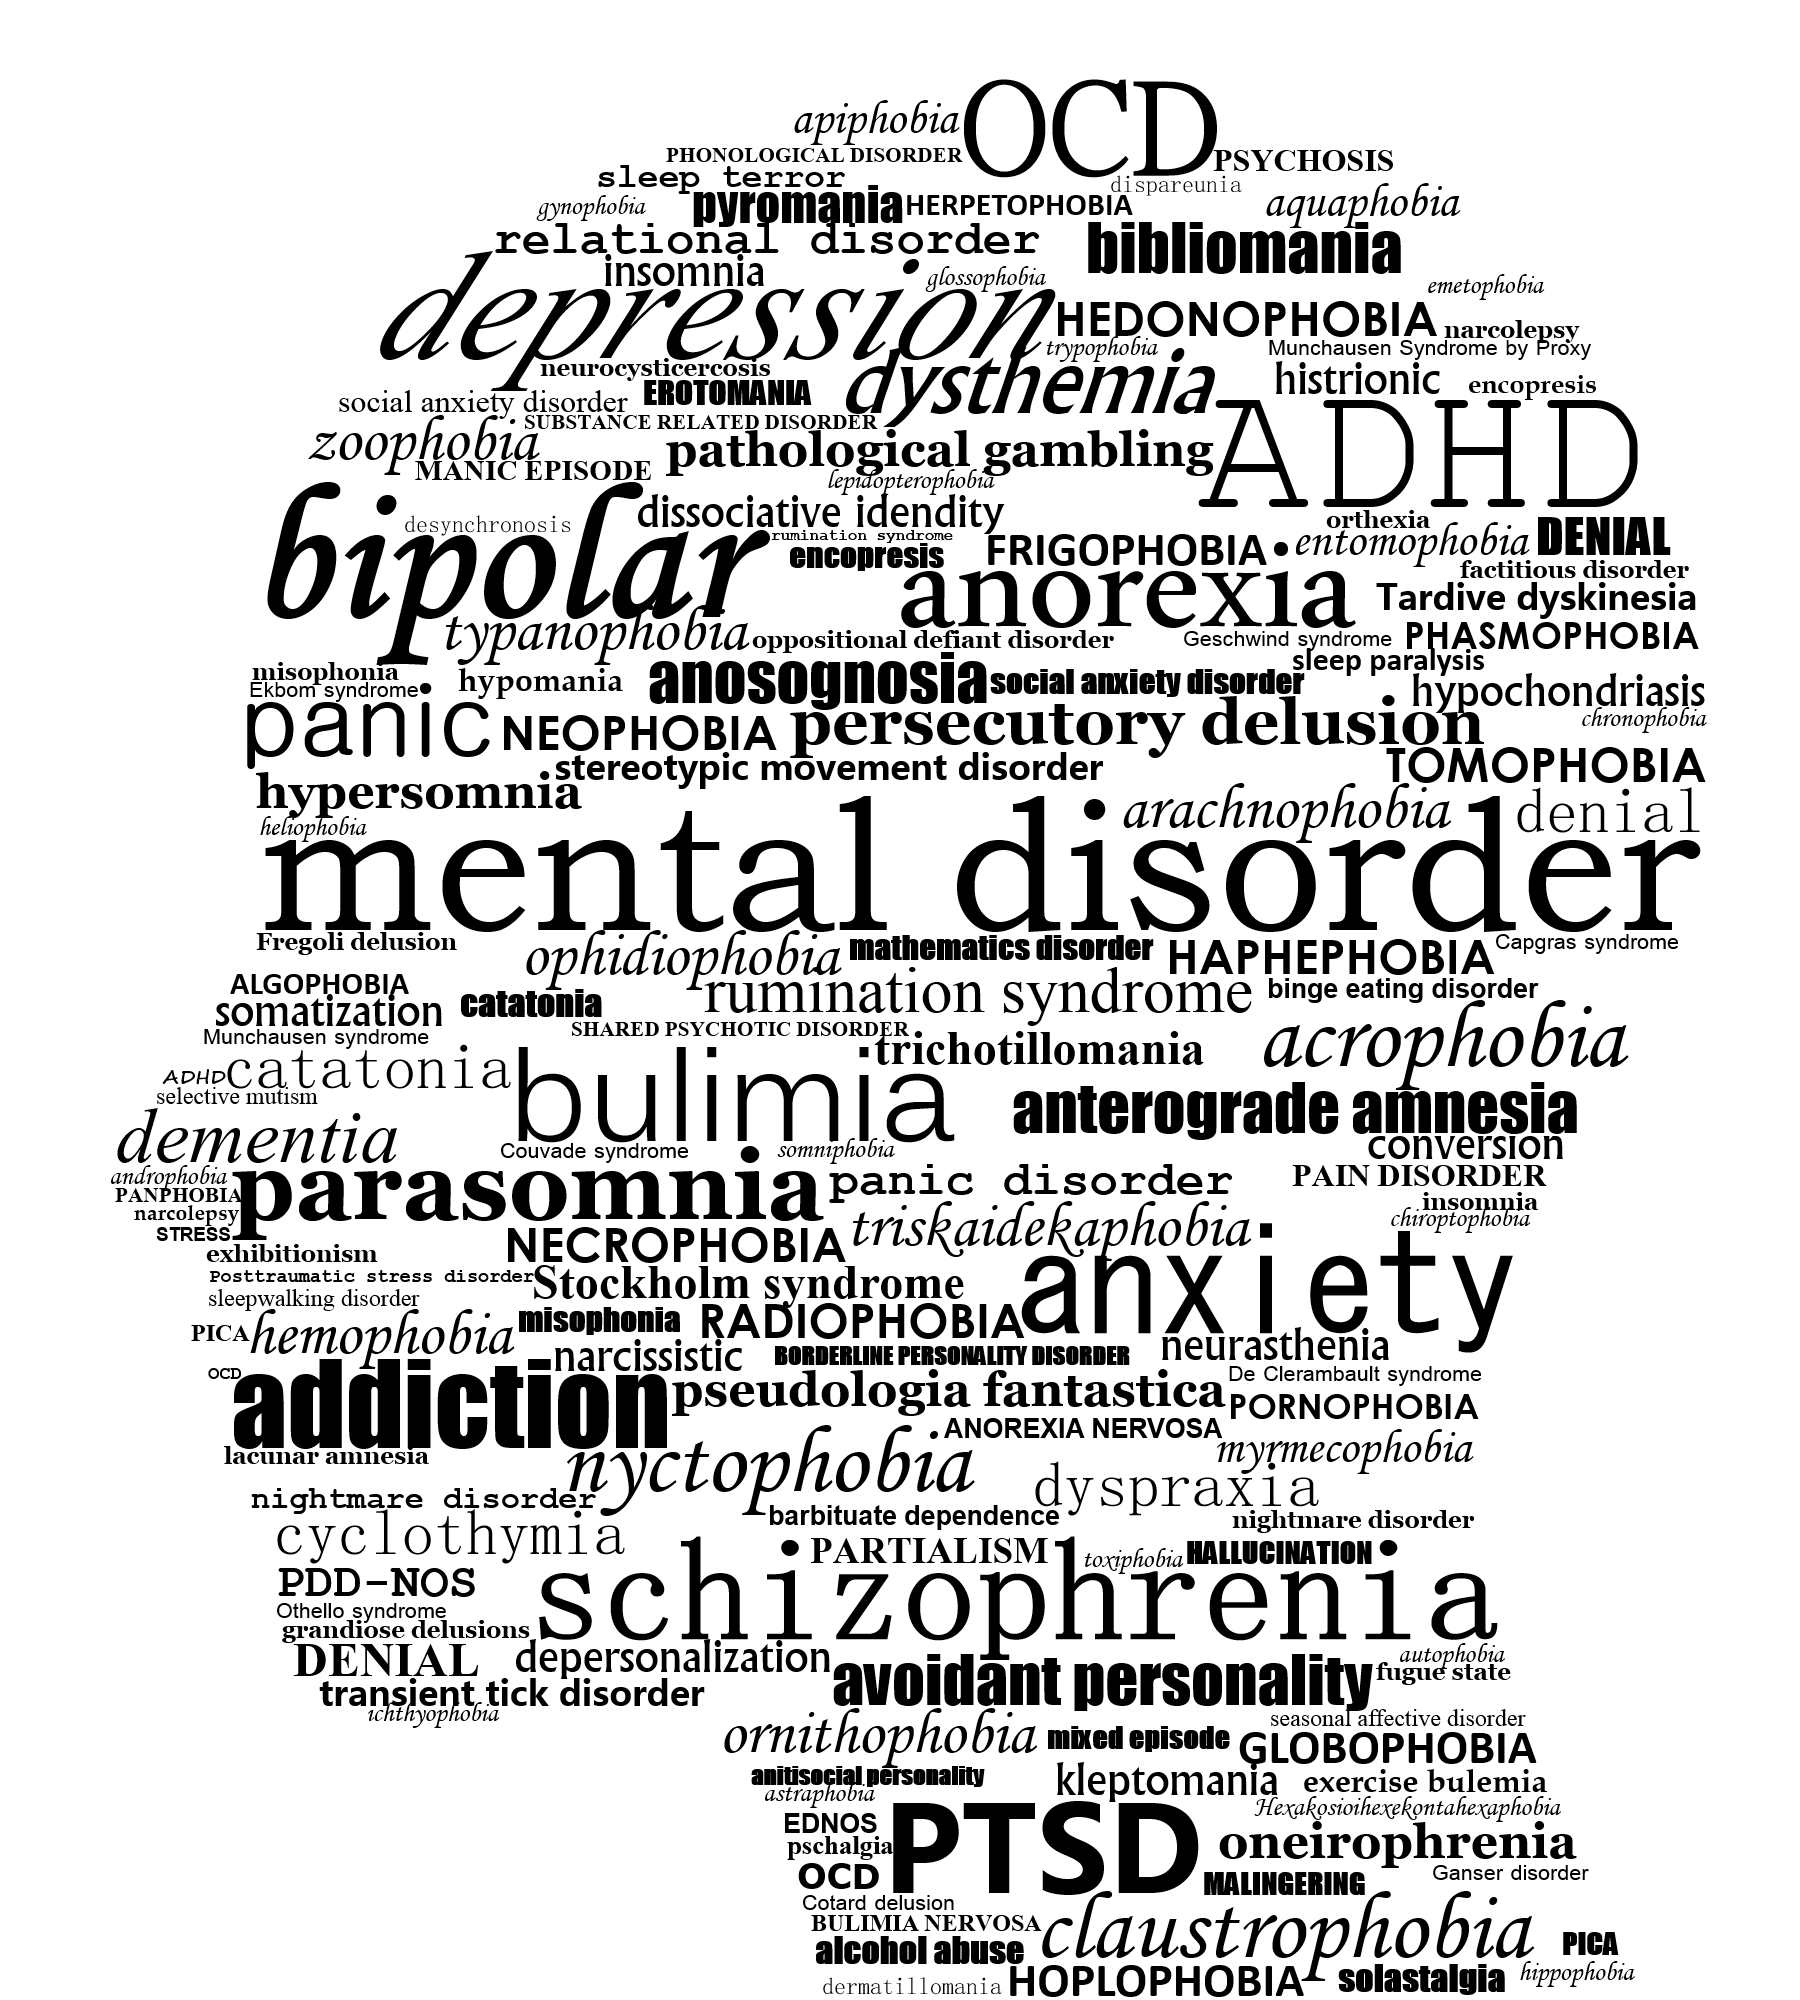 Mental_Disorder_Silhouette.png?profile=RESIZE_710x